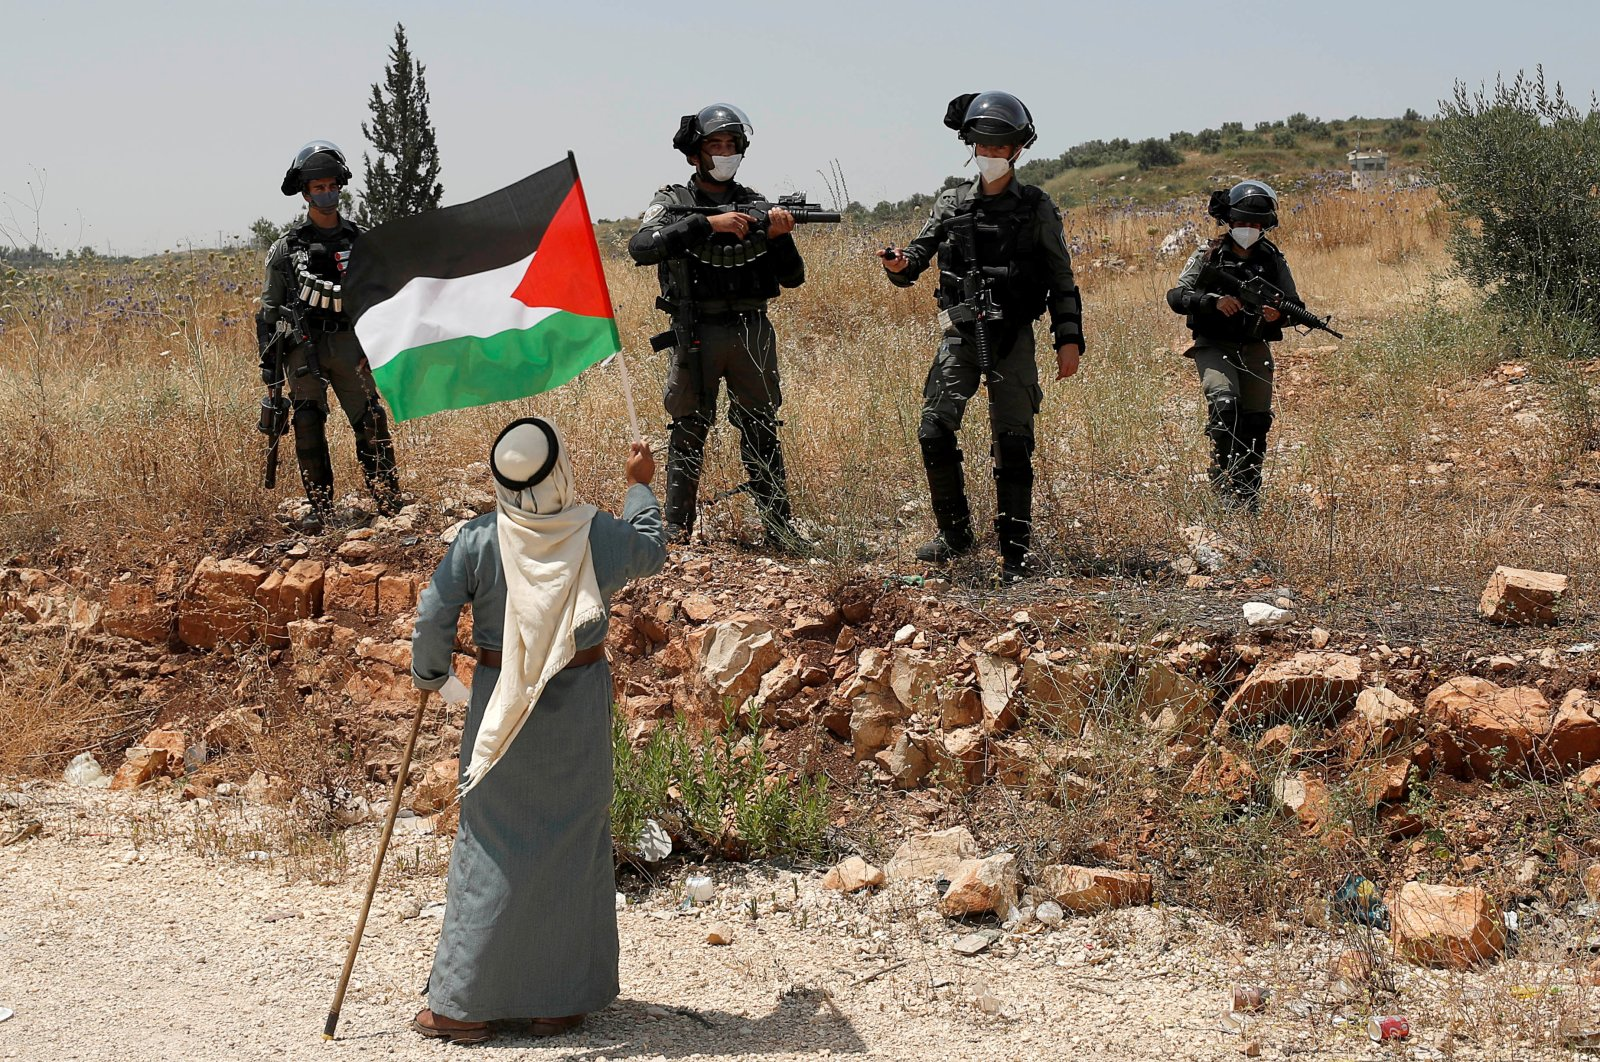 A demonstrator holds a Palestinian flag in front of Israeli forces during a protest against Israel's plan to annex parts of the occupied West Bank, near Tulkarm June 5, 2020. (Reuters Photo)